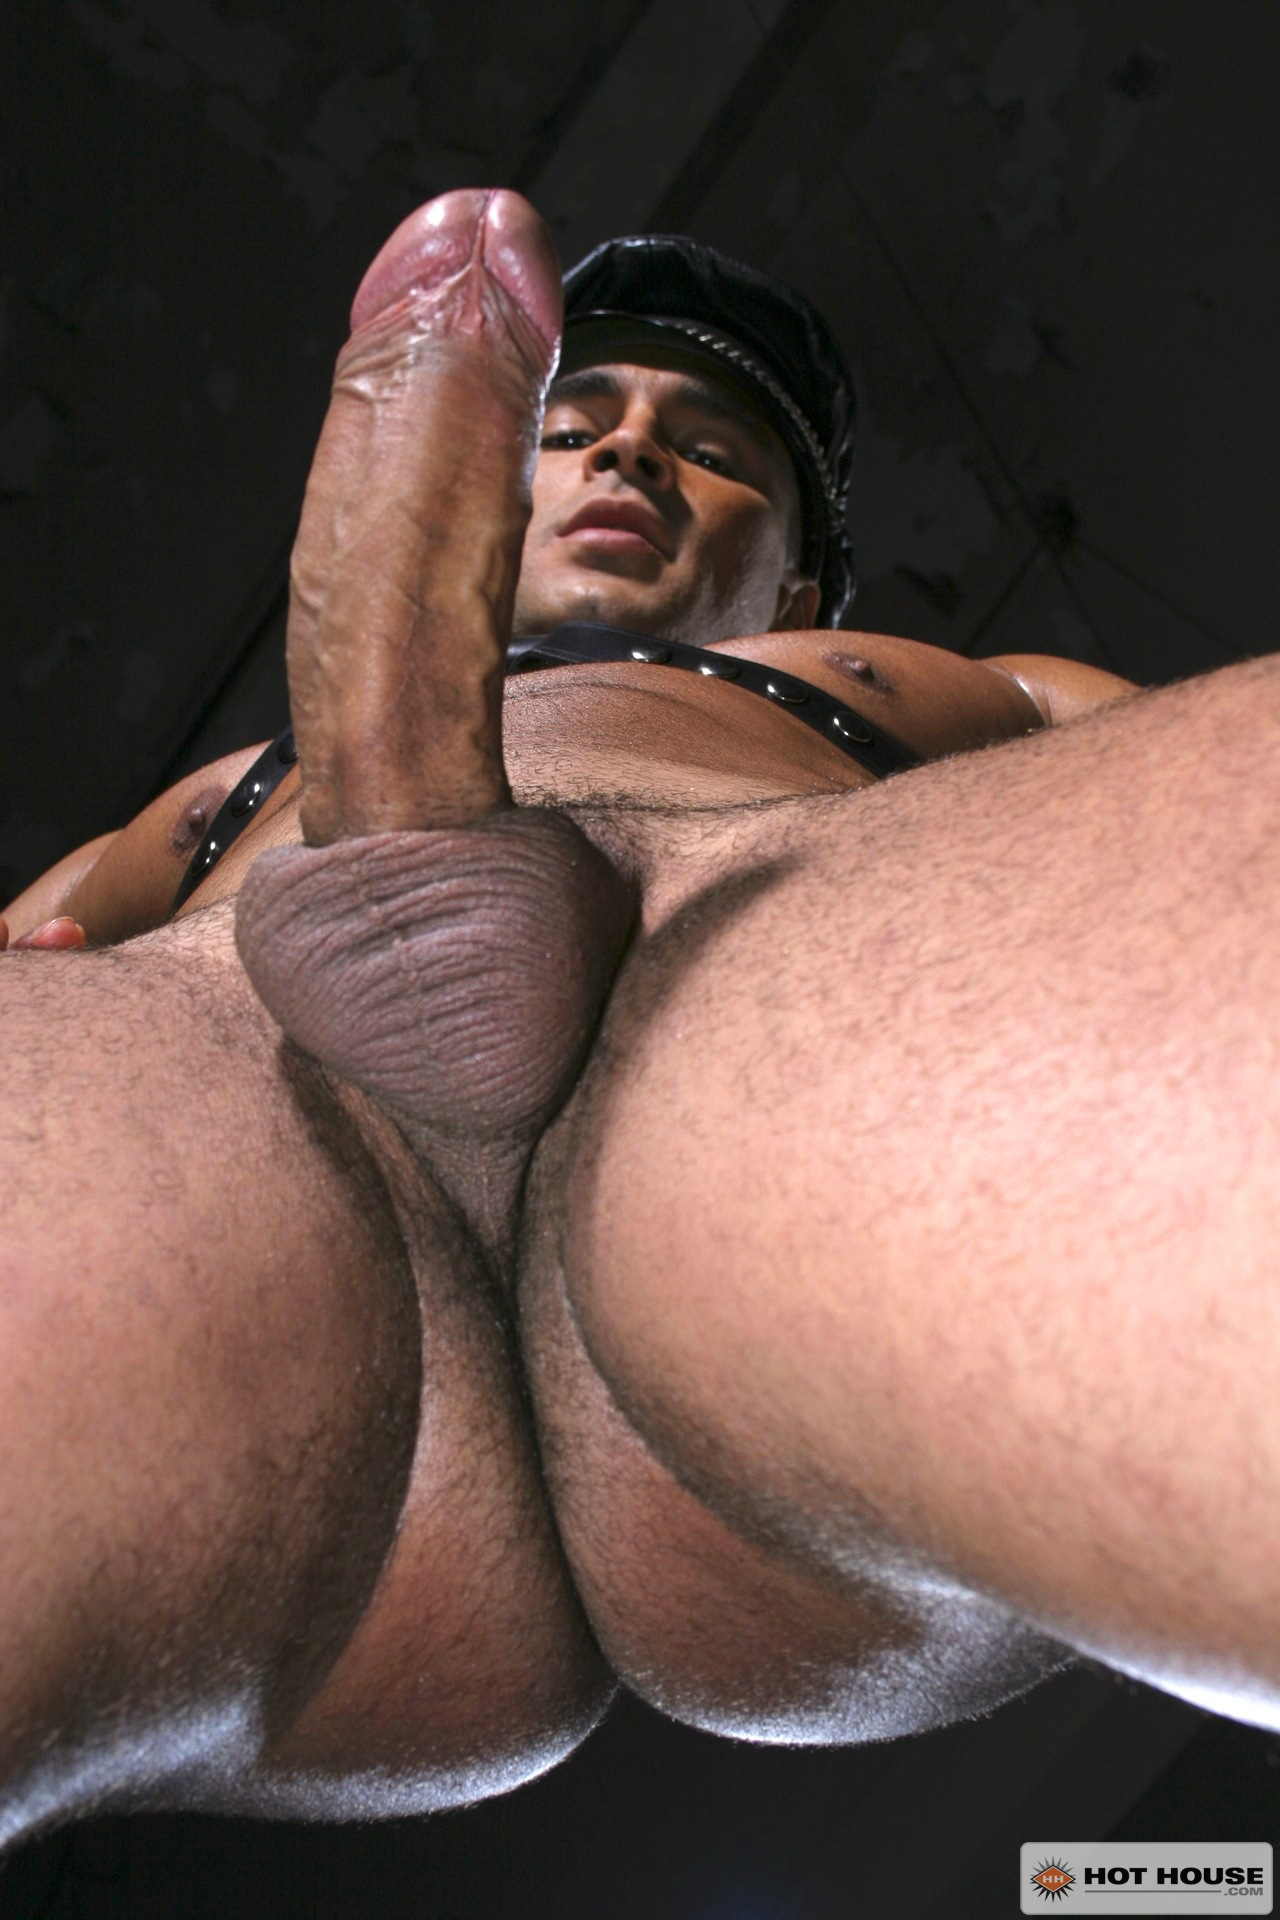 anal clip gay mpeg sex